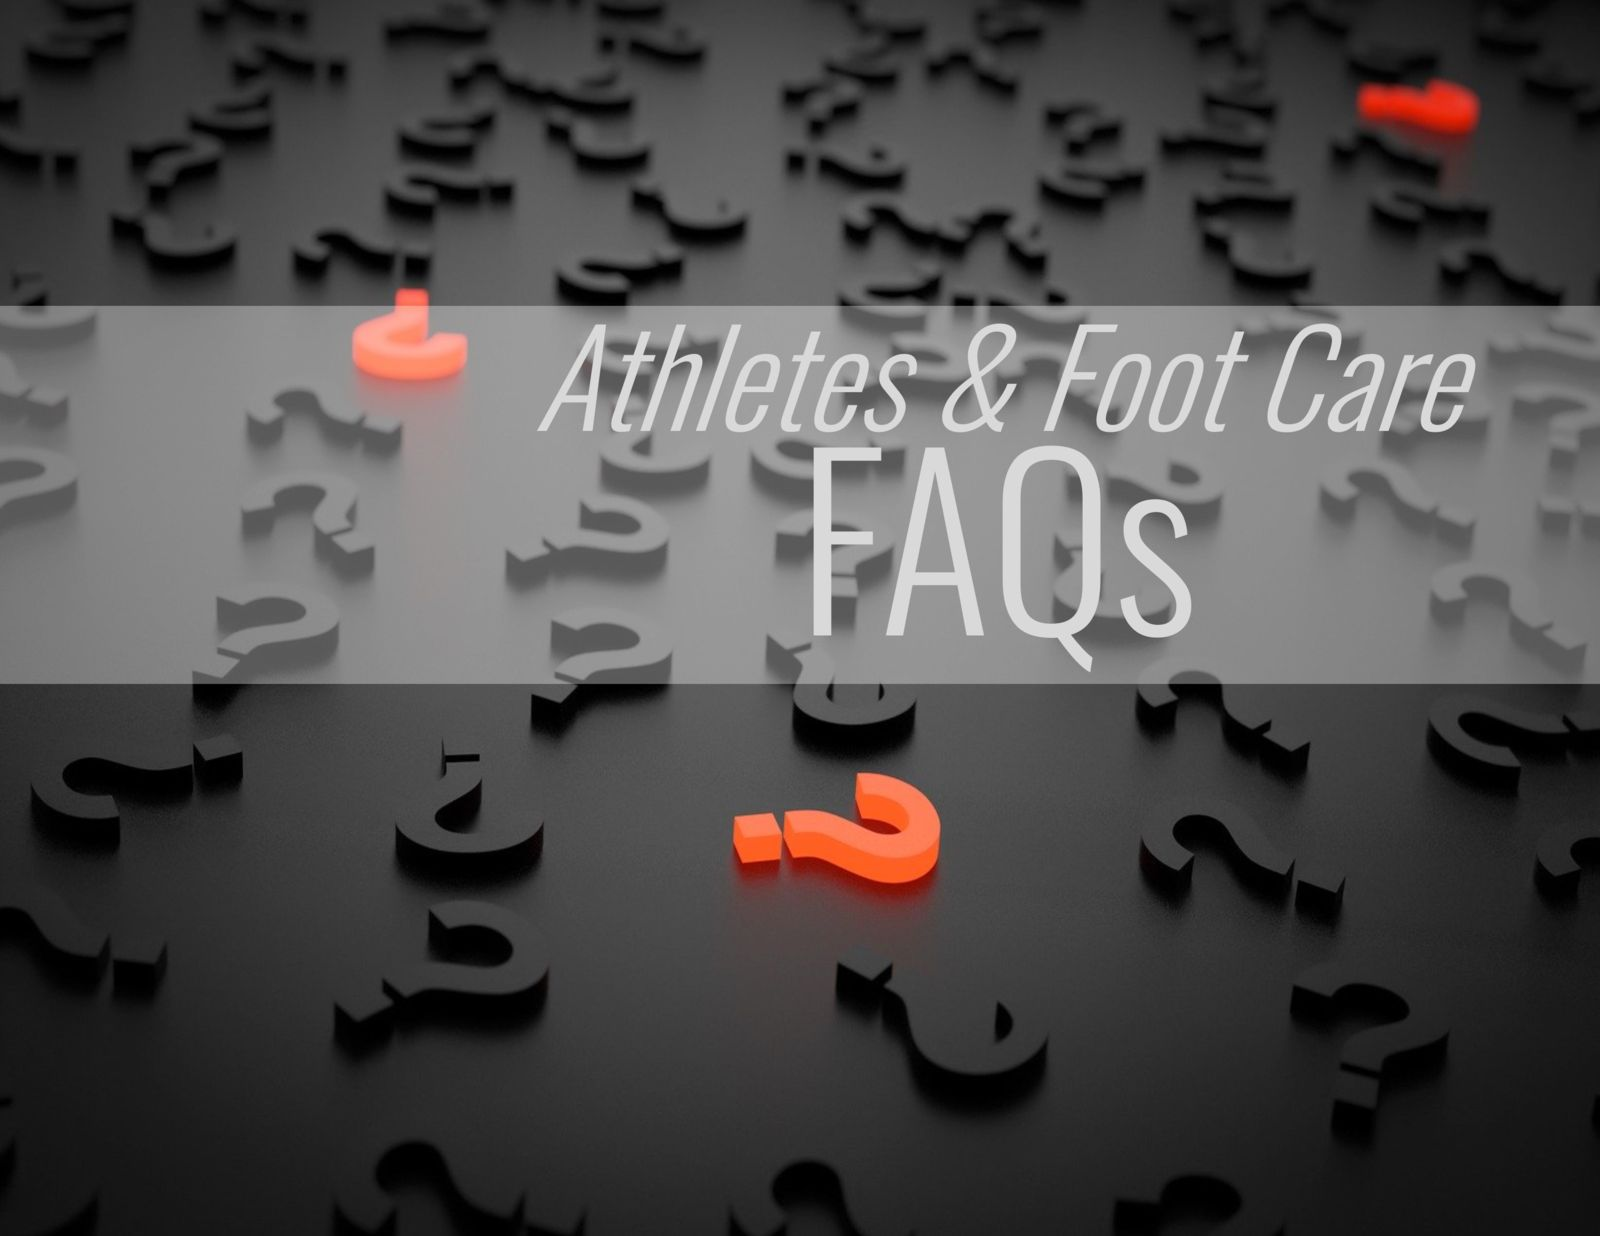 question marks and the words: Athletes & Foot Care FAQs